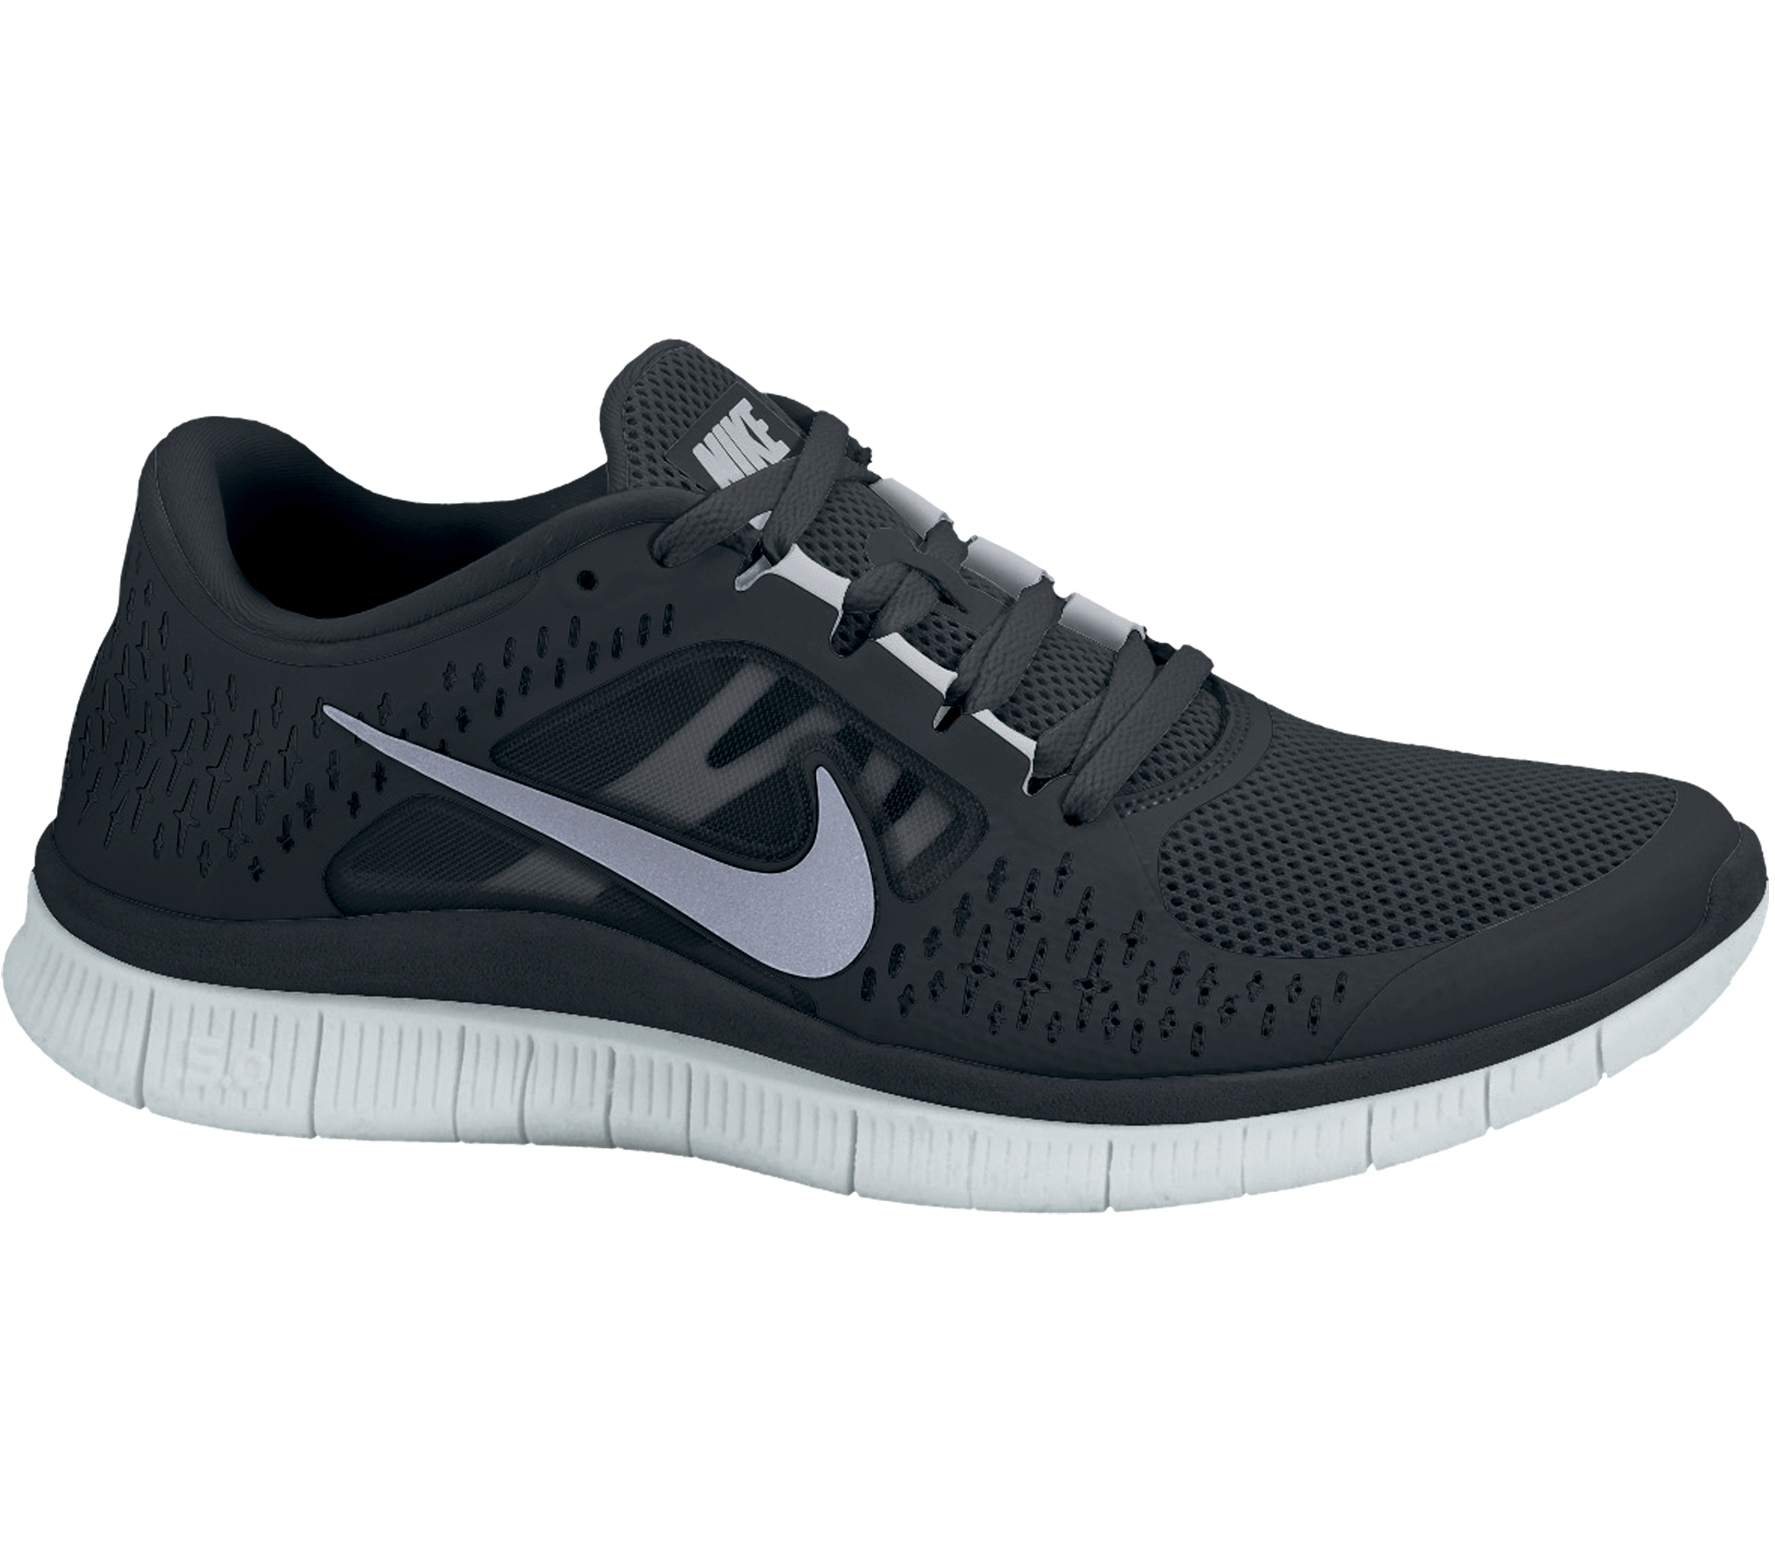 Nike - running shoe Free Run+ 3 black - SP13